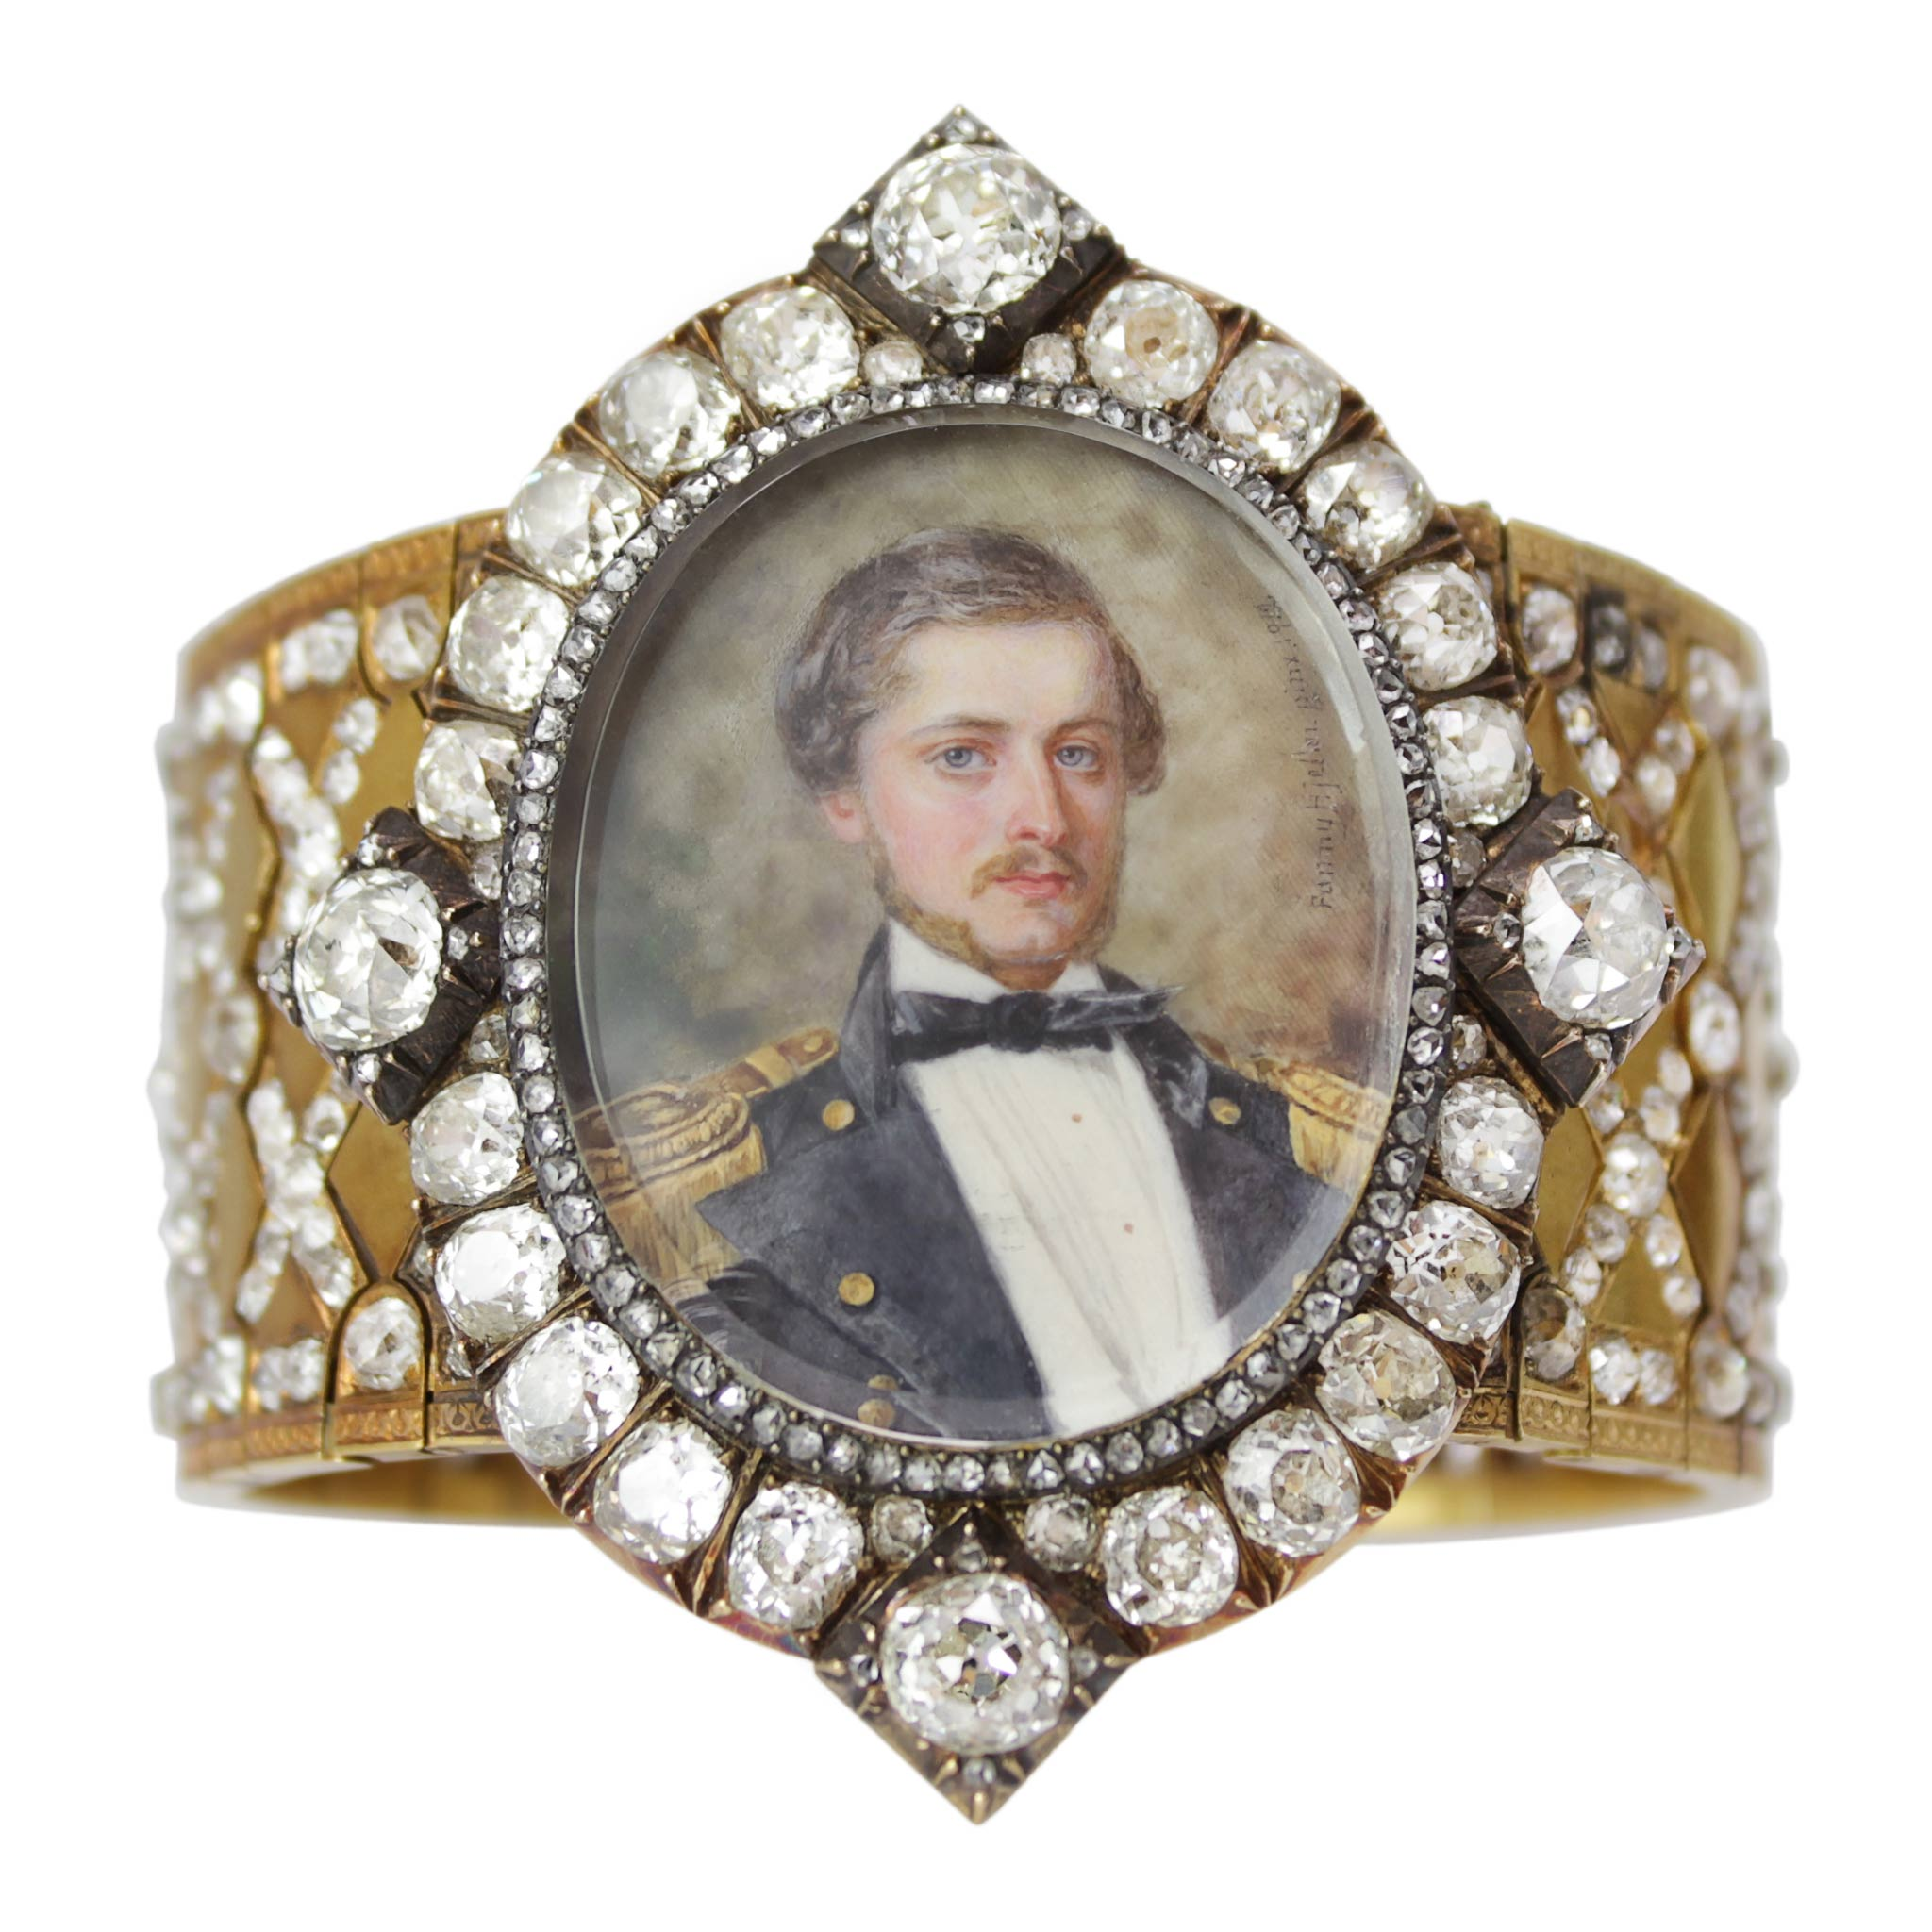 Romance and Diamonds Cuff - 18k Antique Bracelet with Swedish Artist Hand Painted Miniature Portrait of Military Man